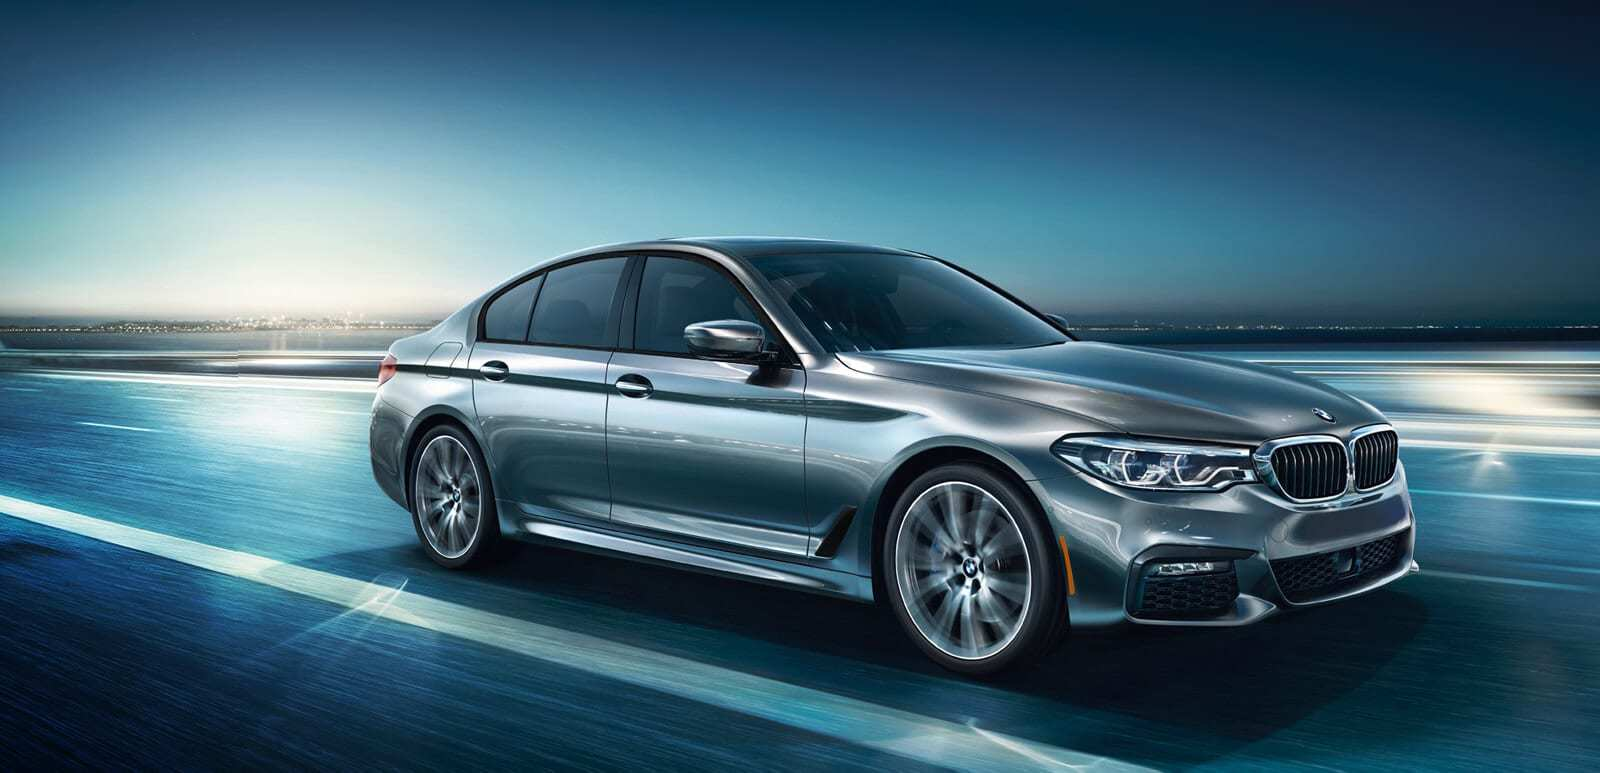 20 Concept of The Bmw 2019 5 Series Release Date Price with The Bmw 2019 5 Series Release Date